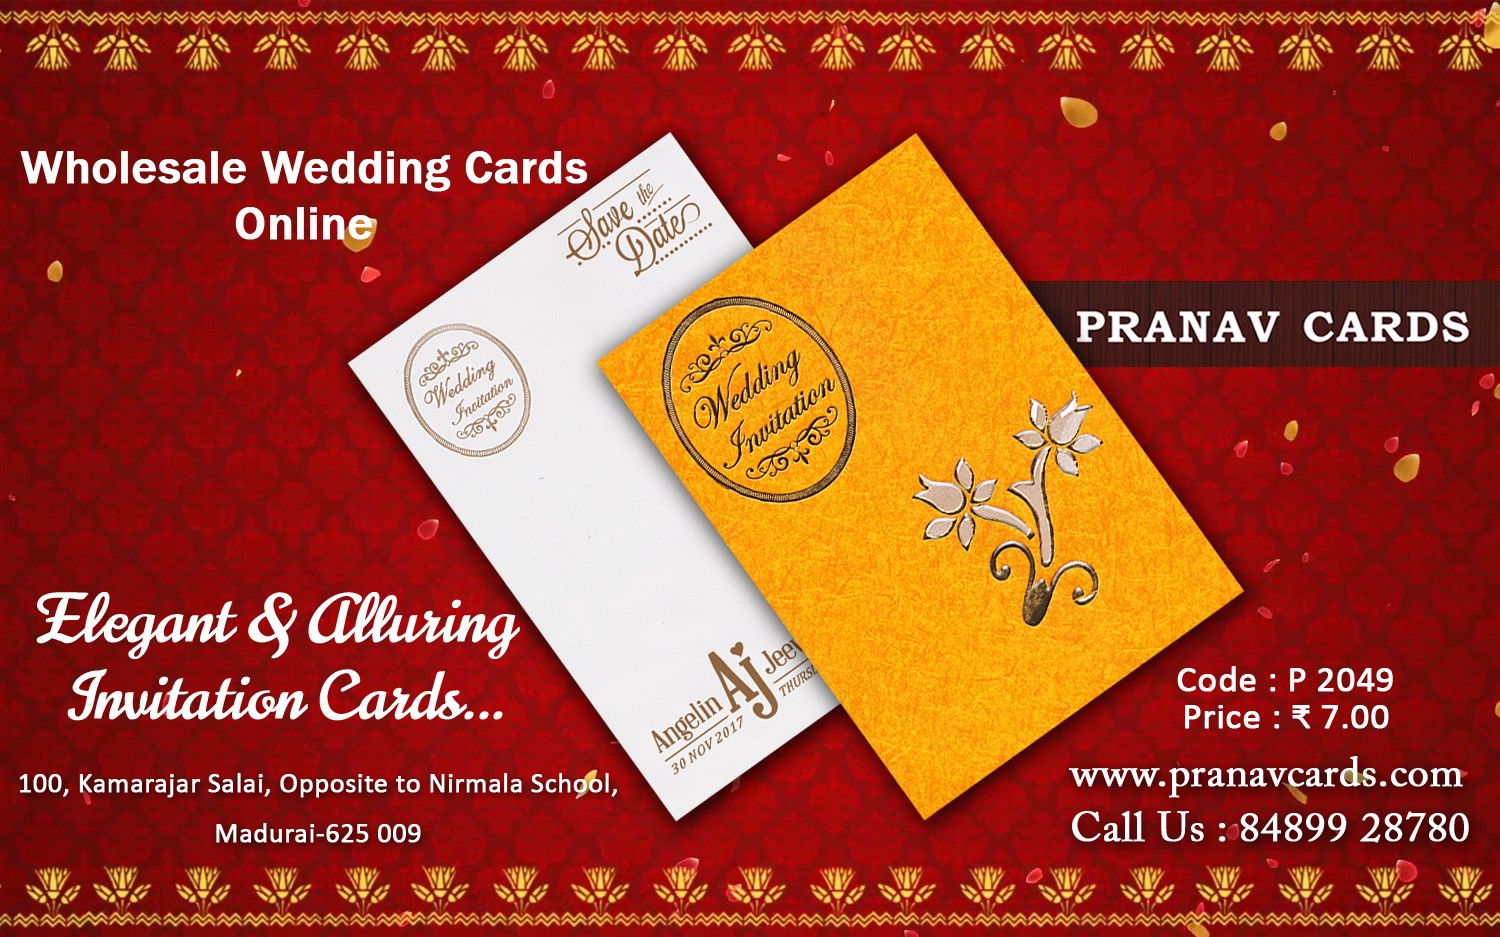 Pranav Cards Modern Wedding Invitations For The Perfect Day